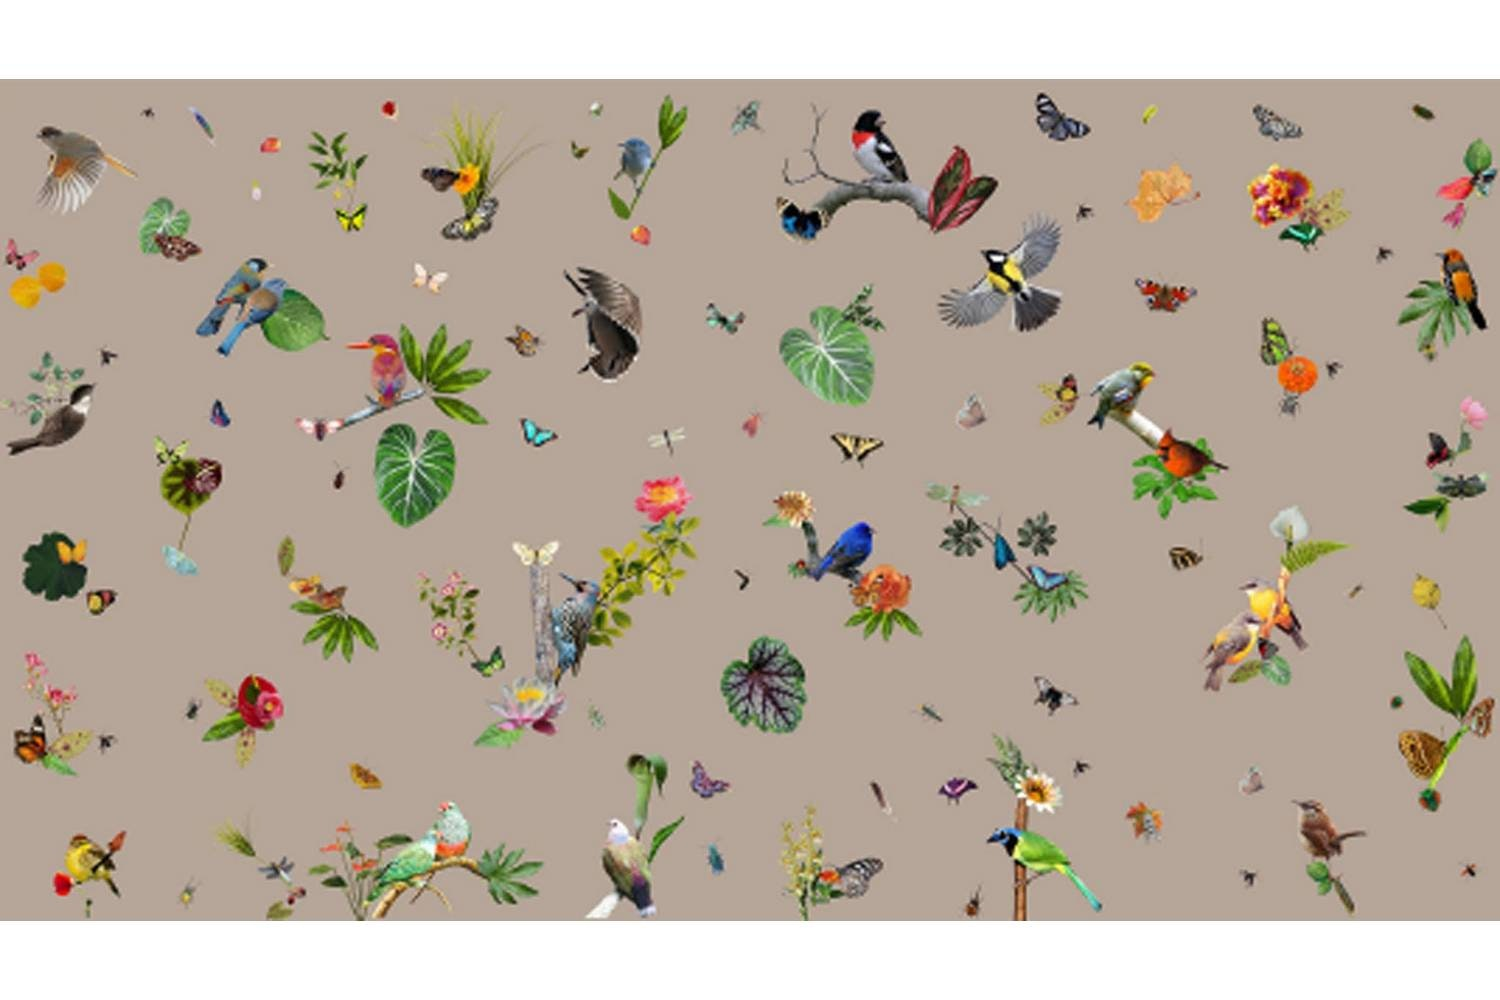 Bird Broadloom Carpet by Edward van Vliet for Moooi Carpets